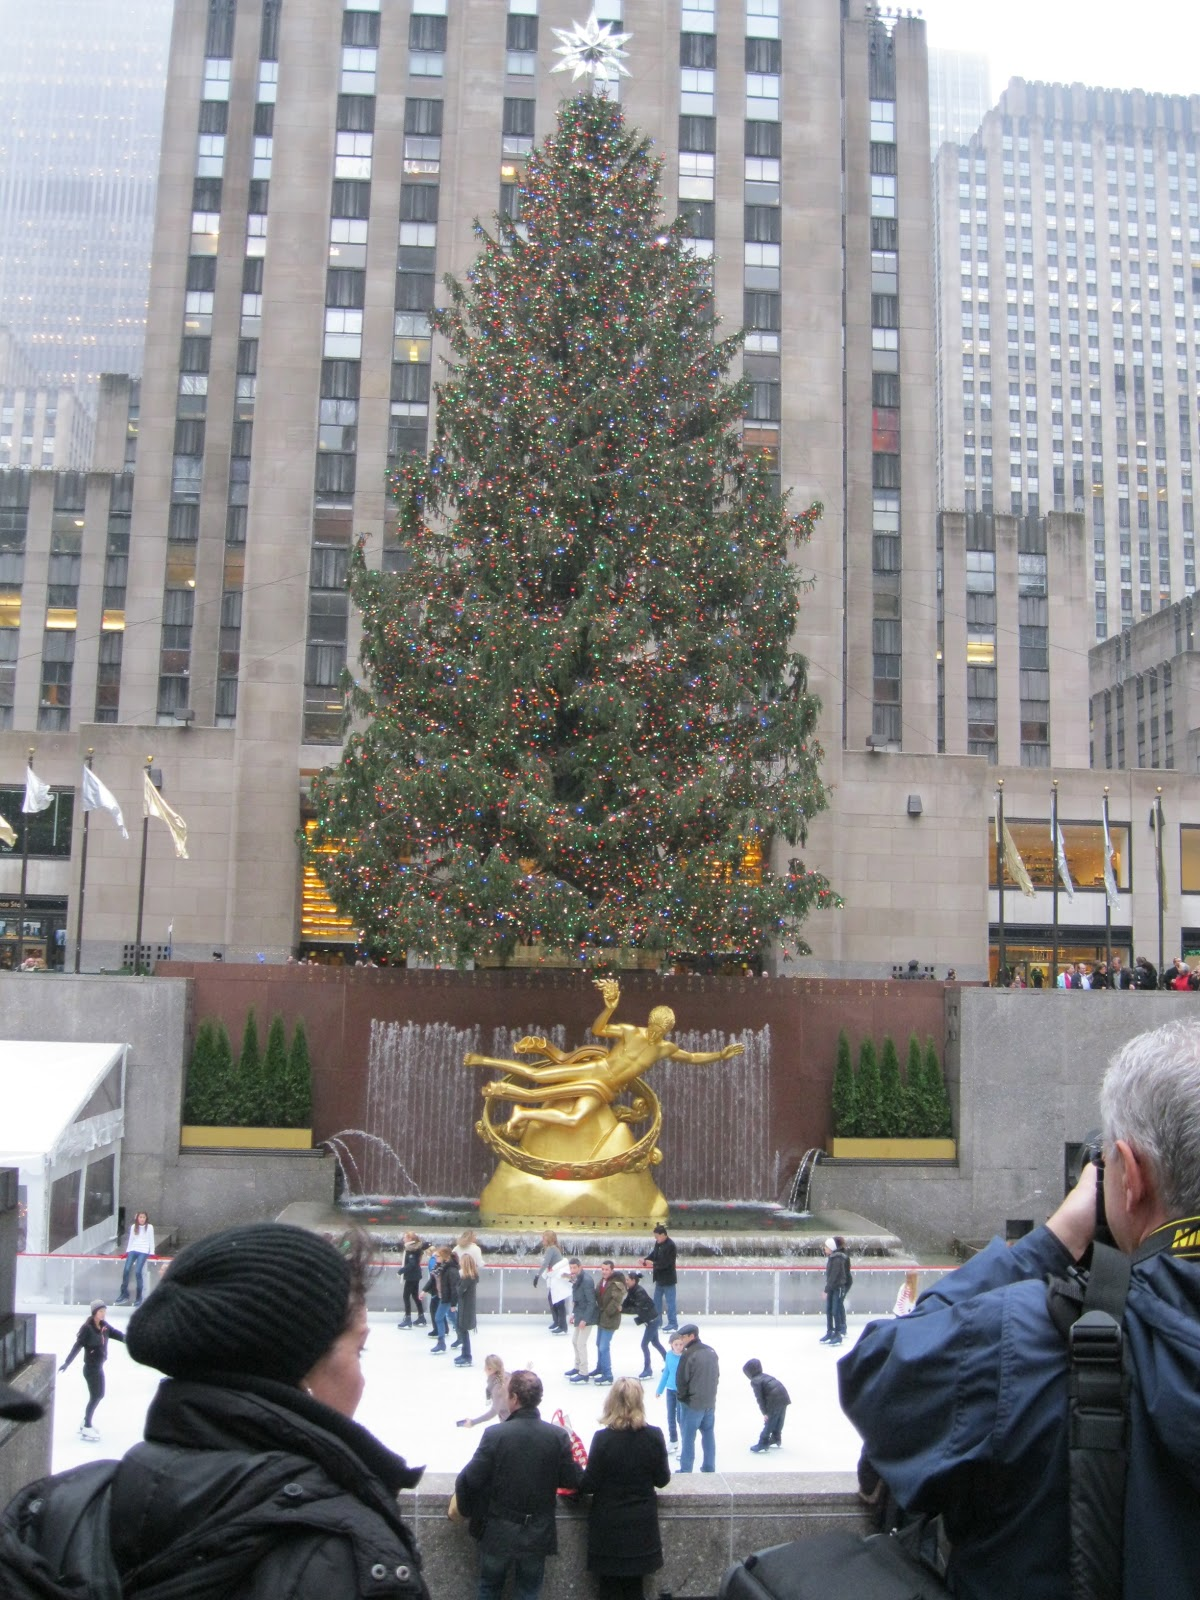 Two Nerdy History Girls: The Biggest Christmas Tree in New York